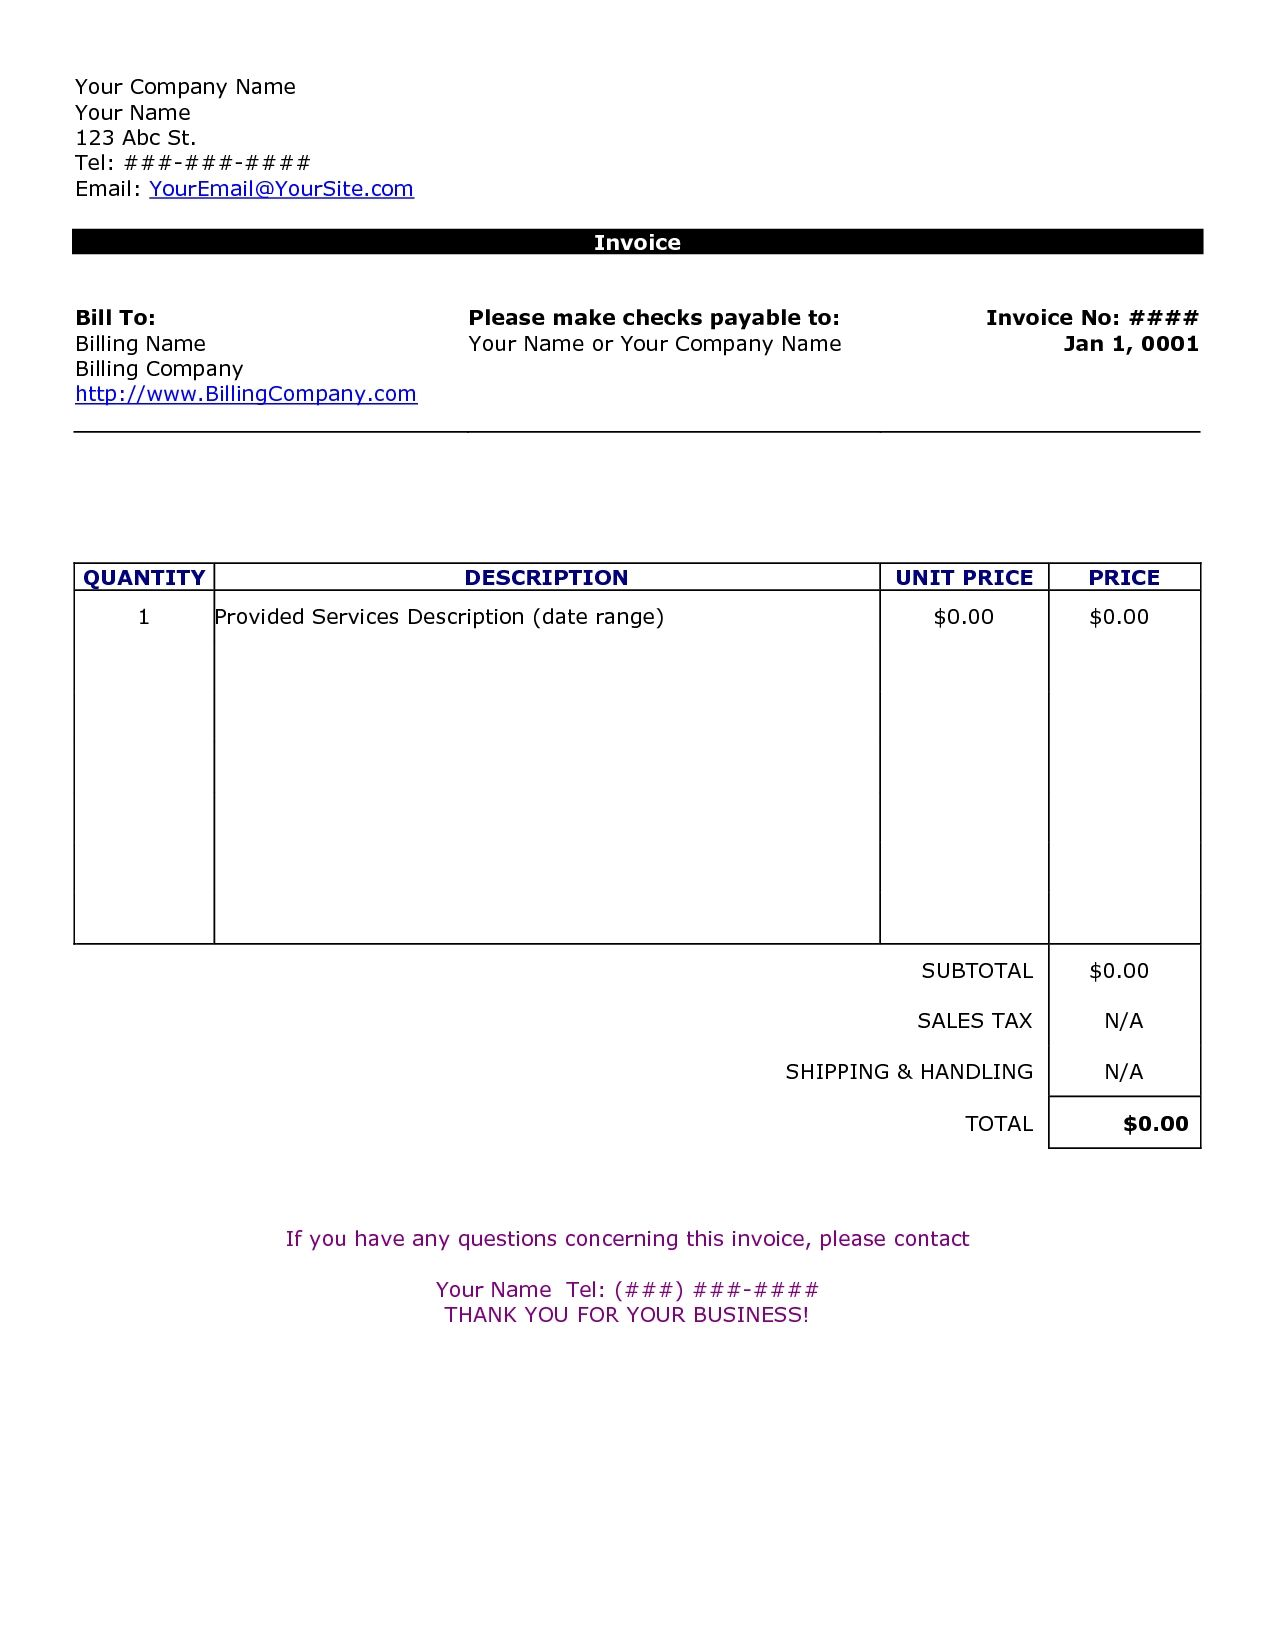 Word Document Invoice Template Blank Invoice Doc Wwwmahtaweb